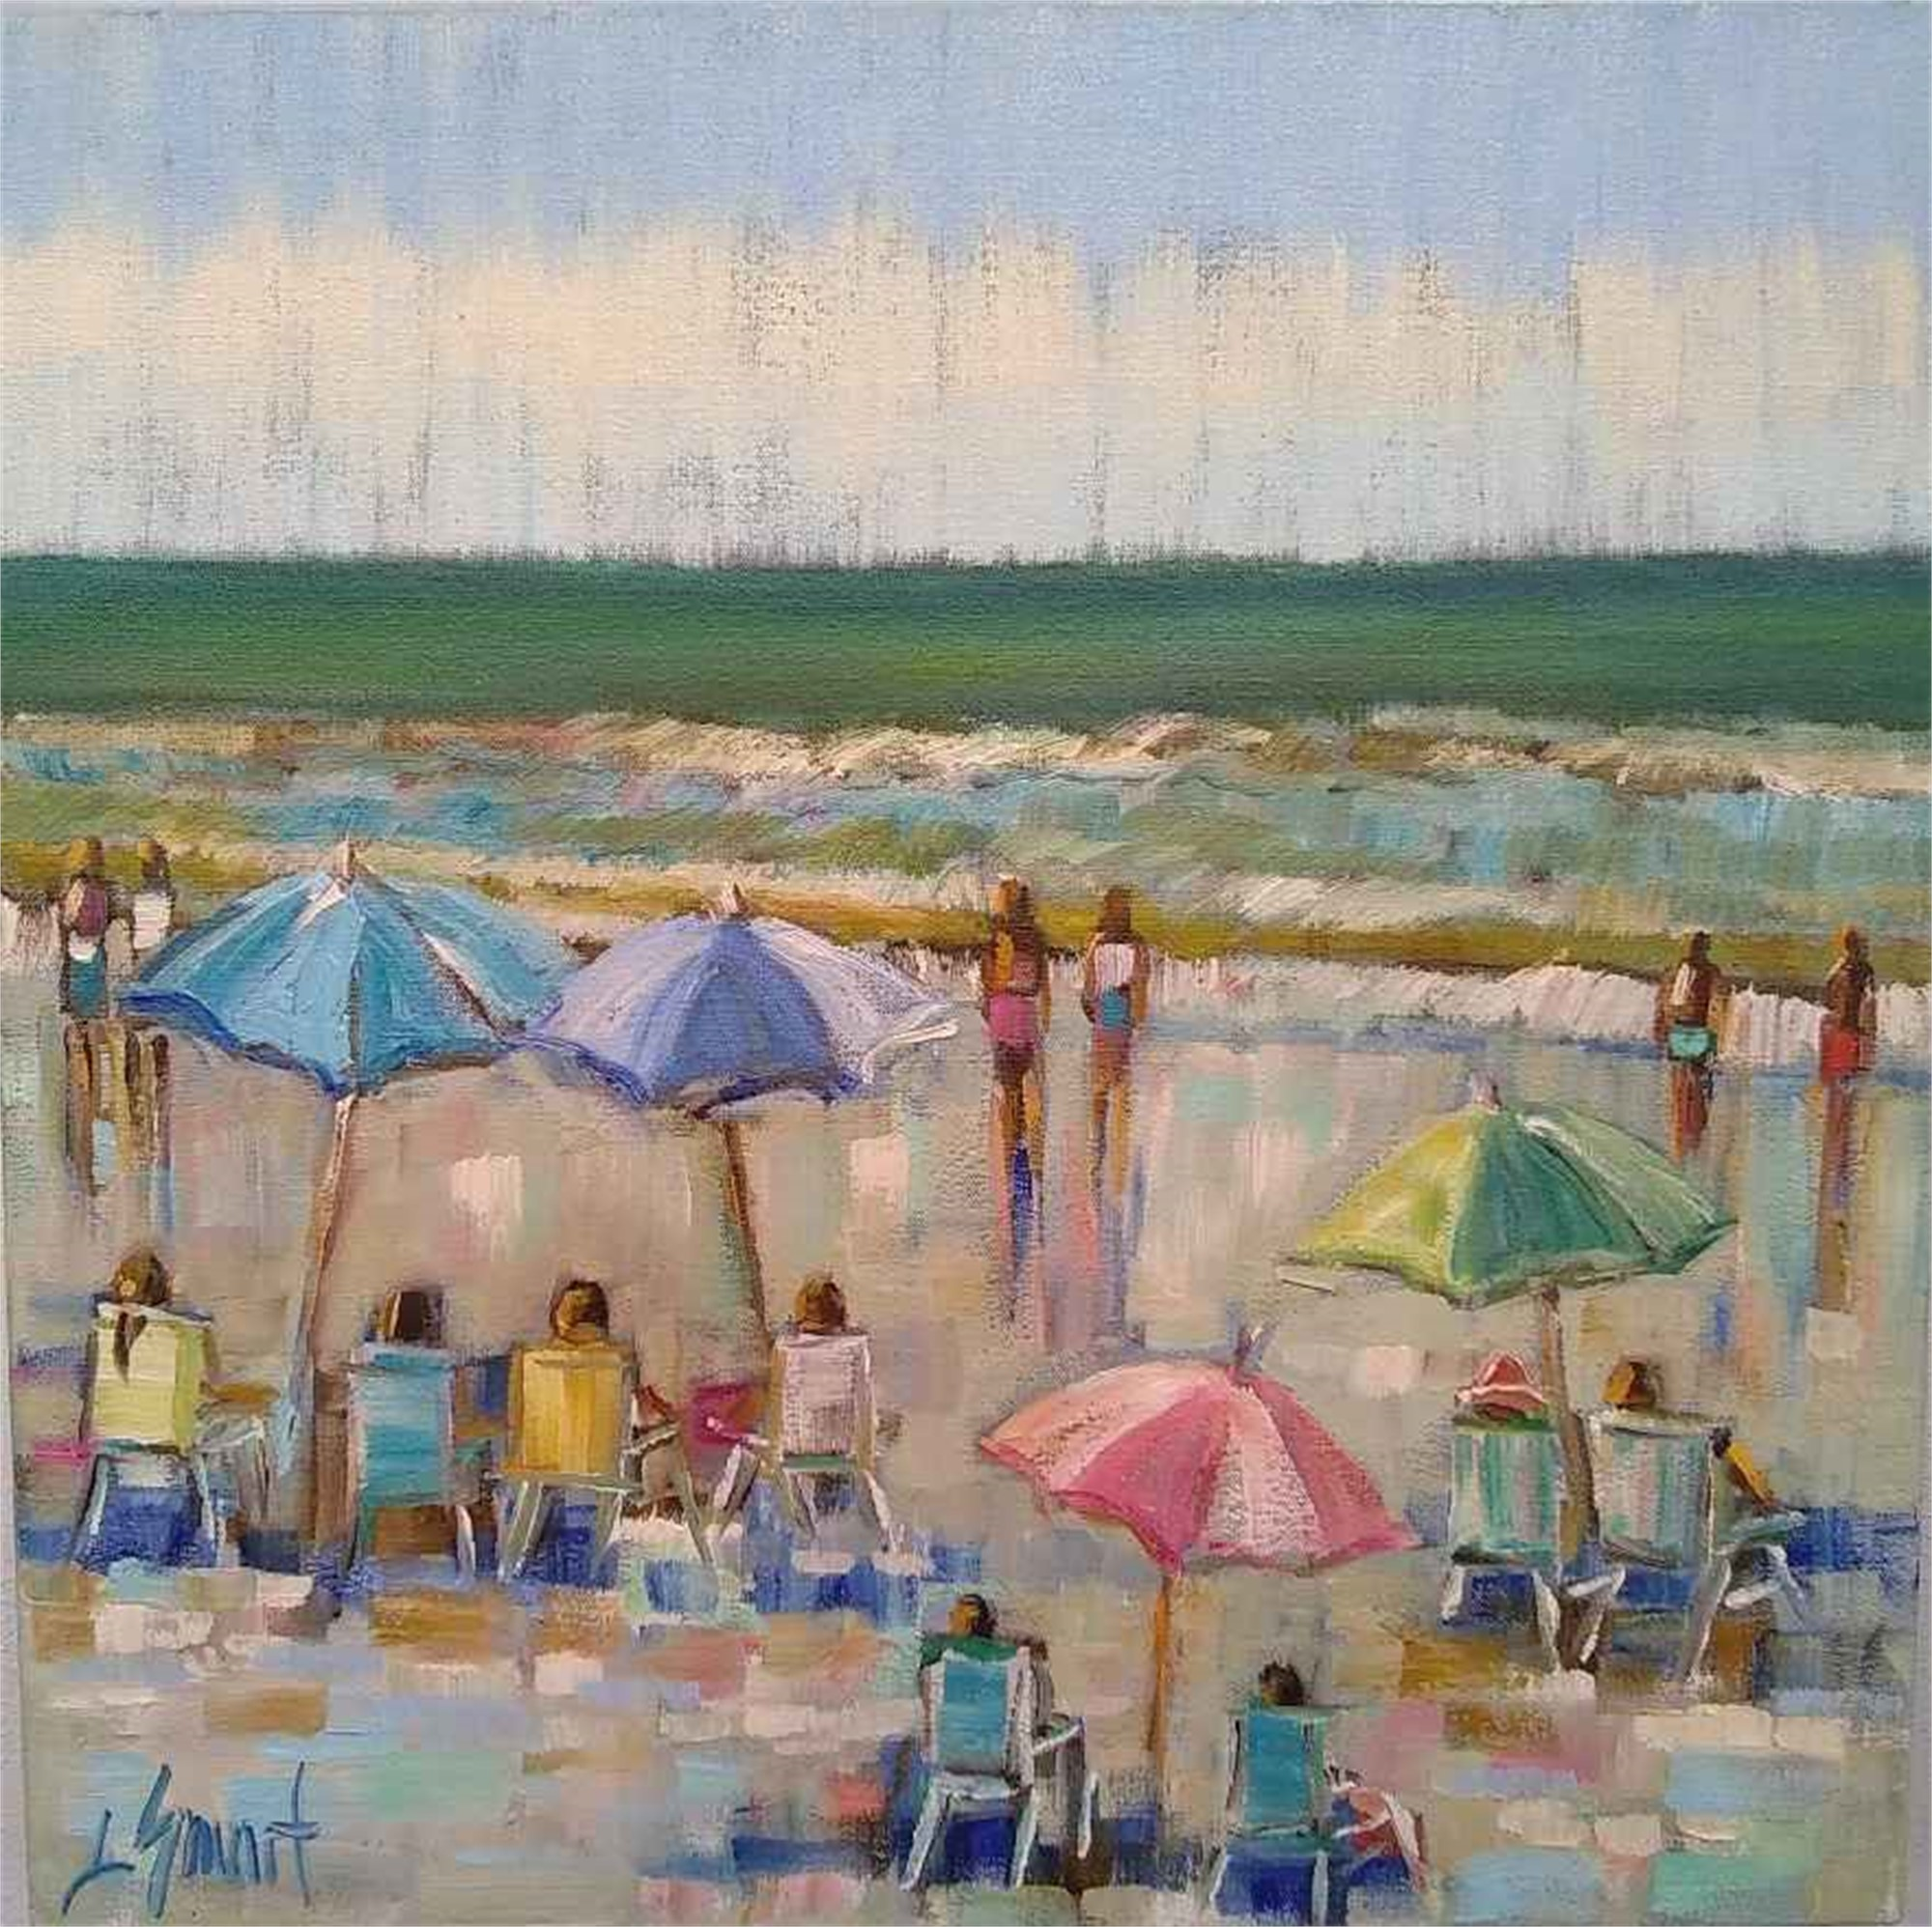 Beach Day by Libby Smart